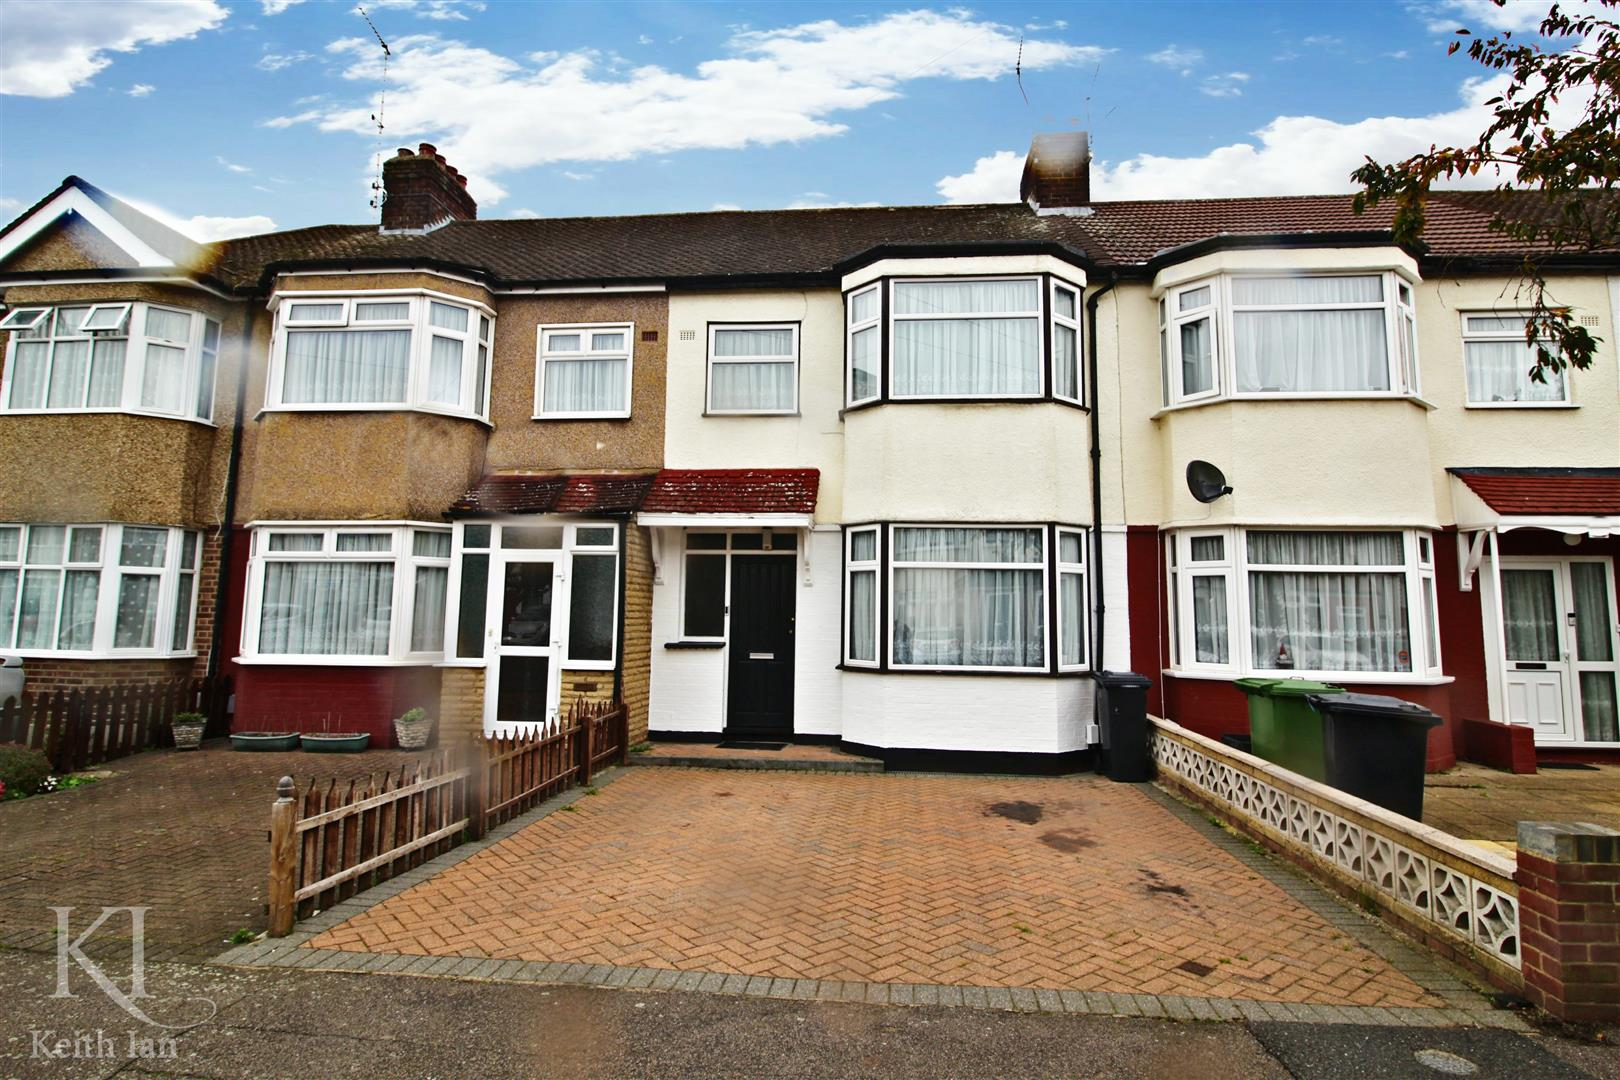 Southfield Road, Waltham Cross - Stunning 3 Bedroom Family Home